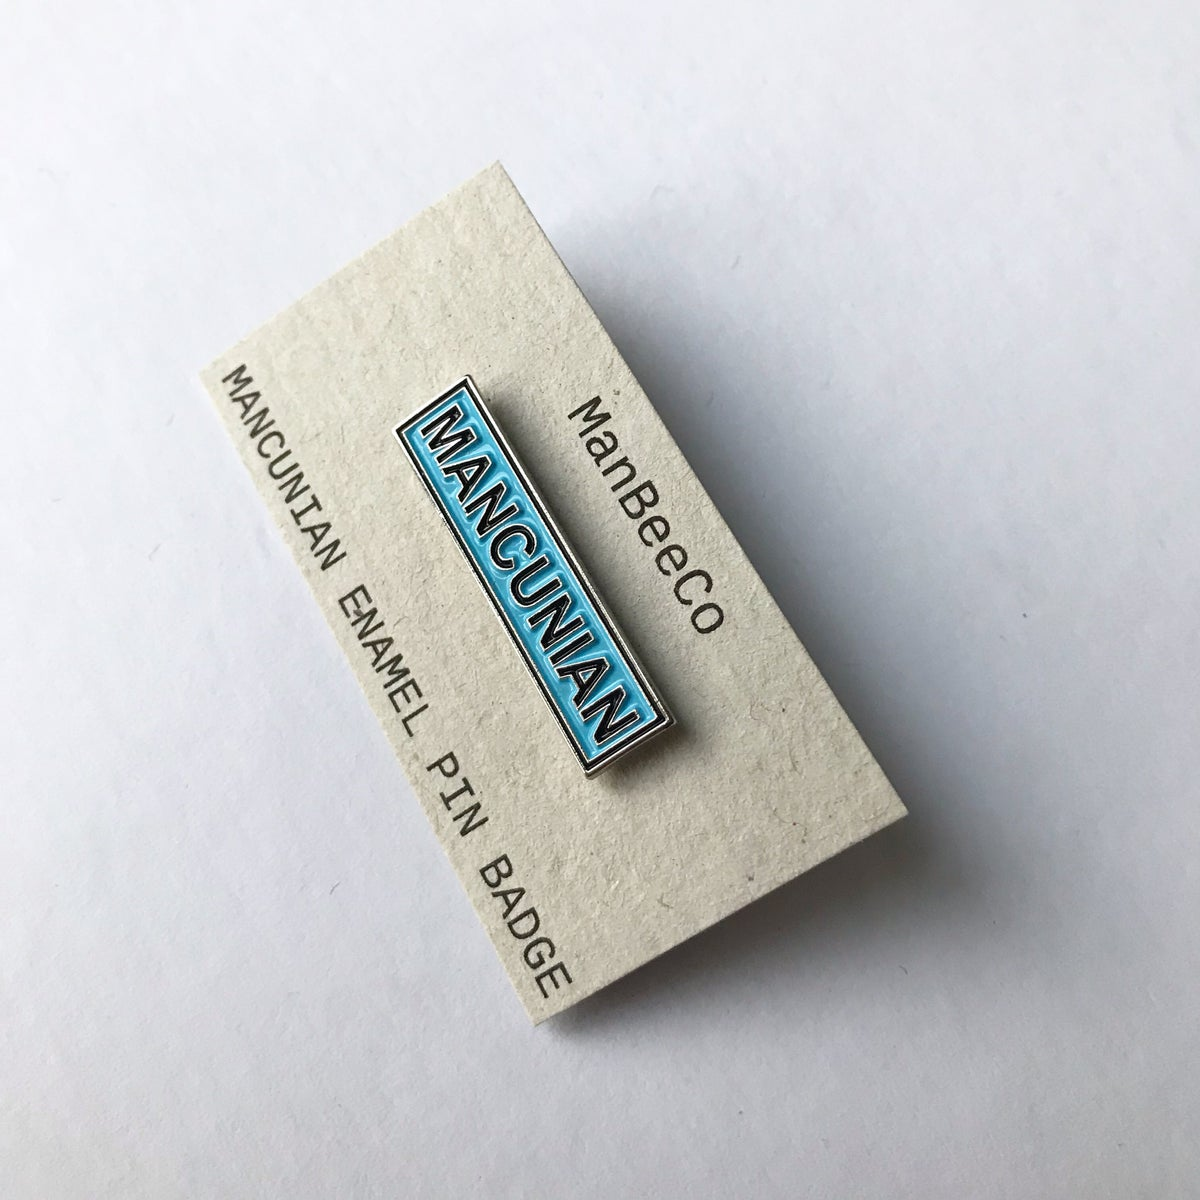 Image of MANCUNIAN ENAMEL BAR PIN BADGE IN BLUE